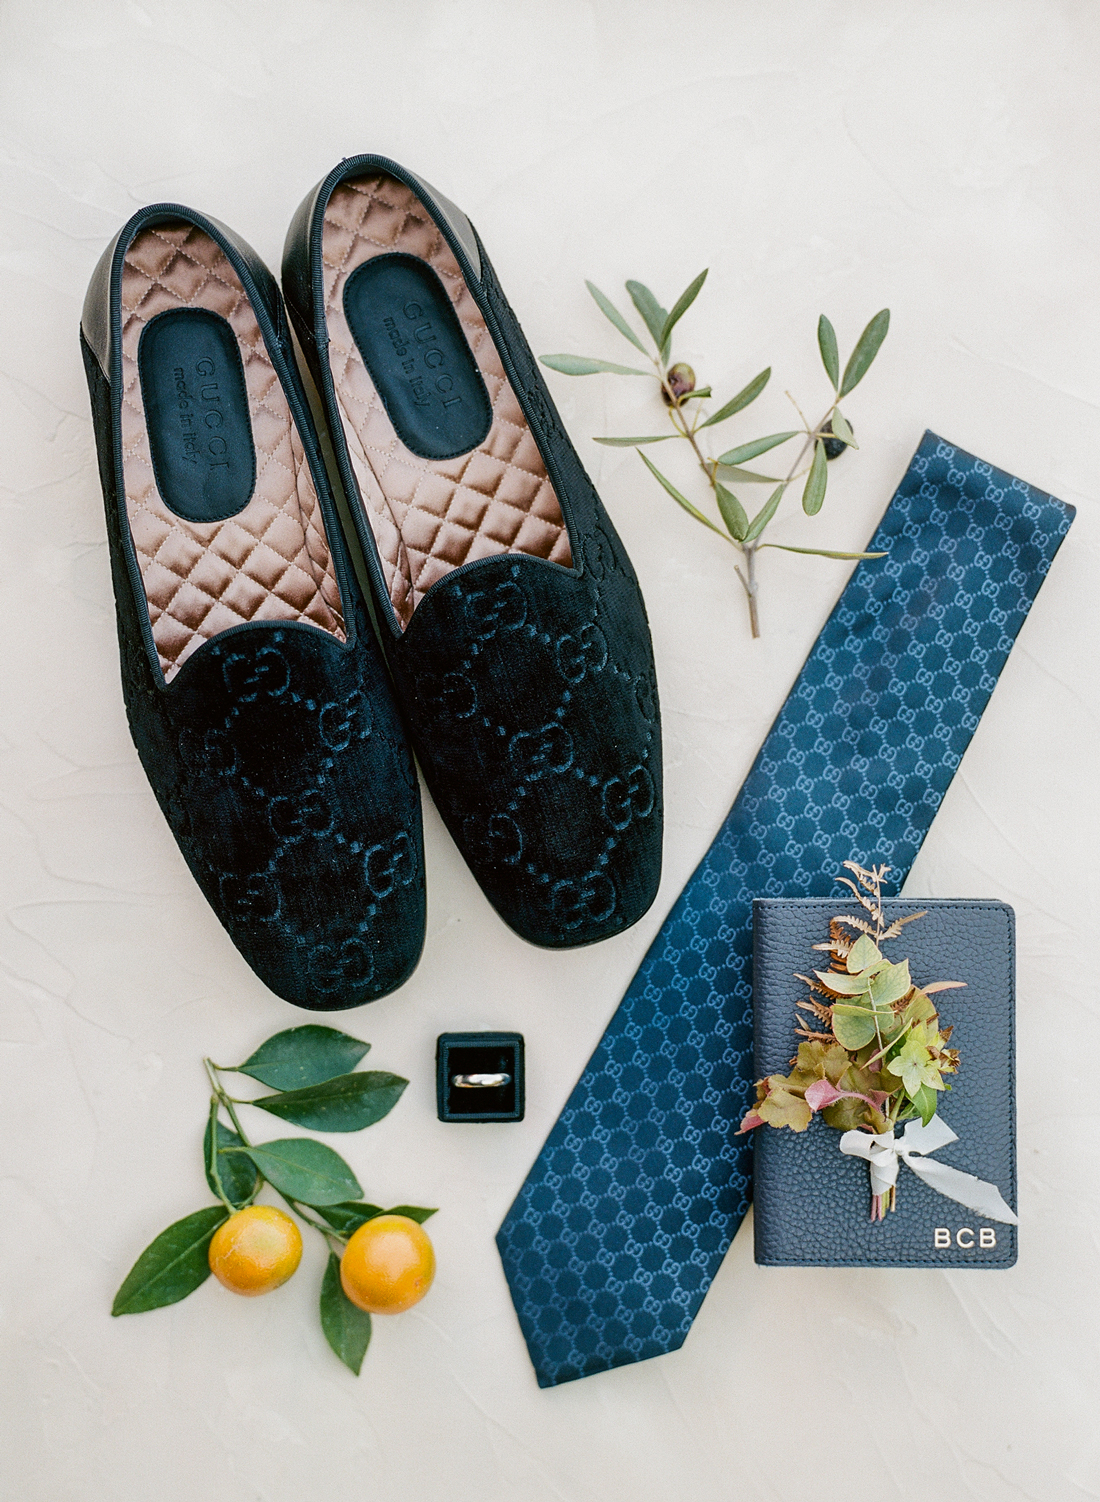 groom accessories gucci shoes and tie